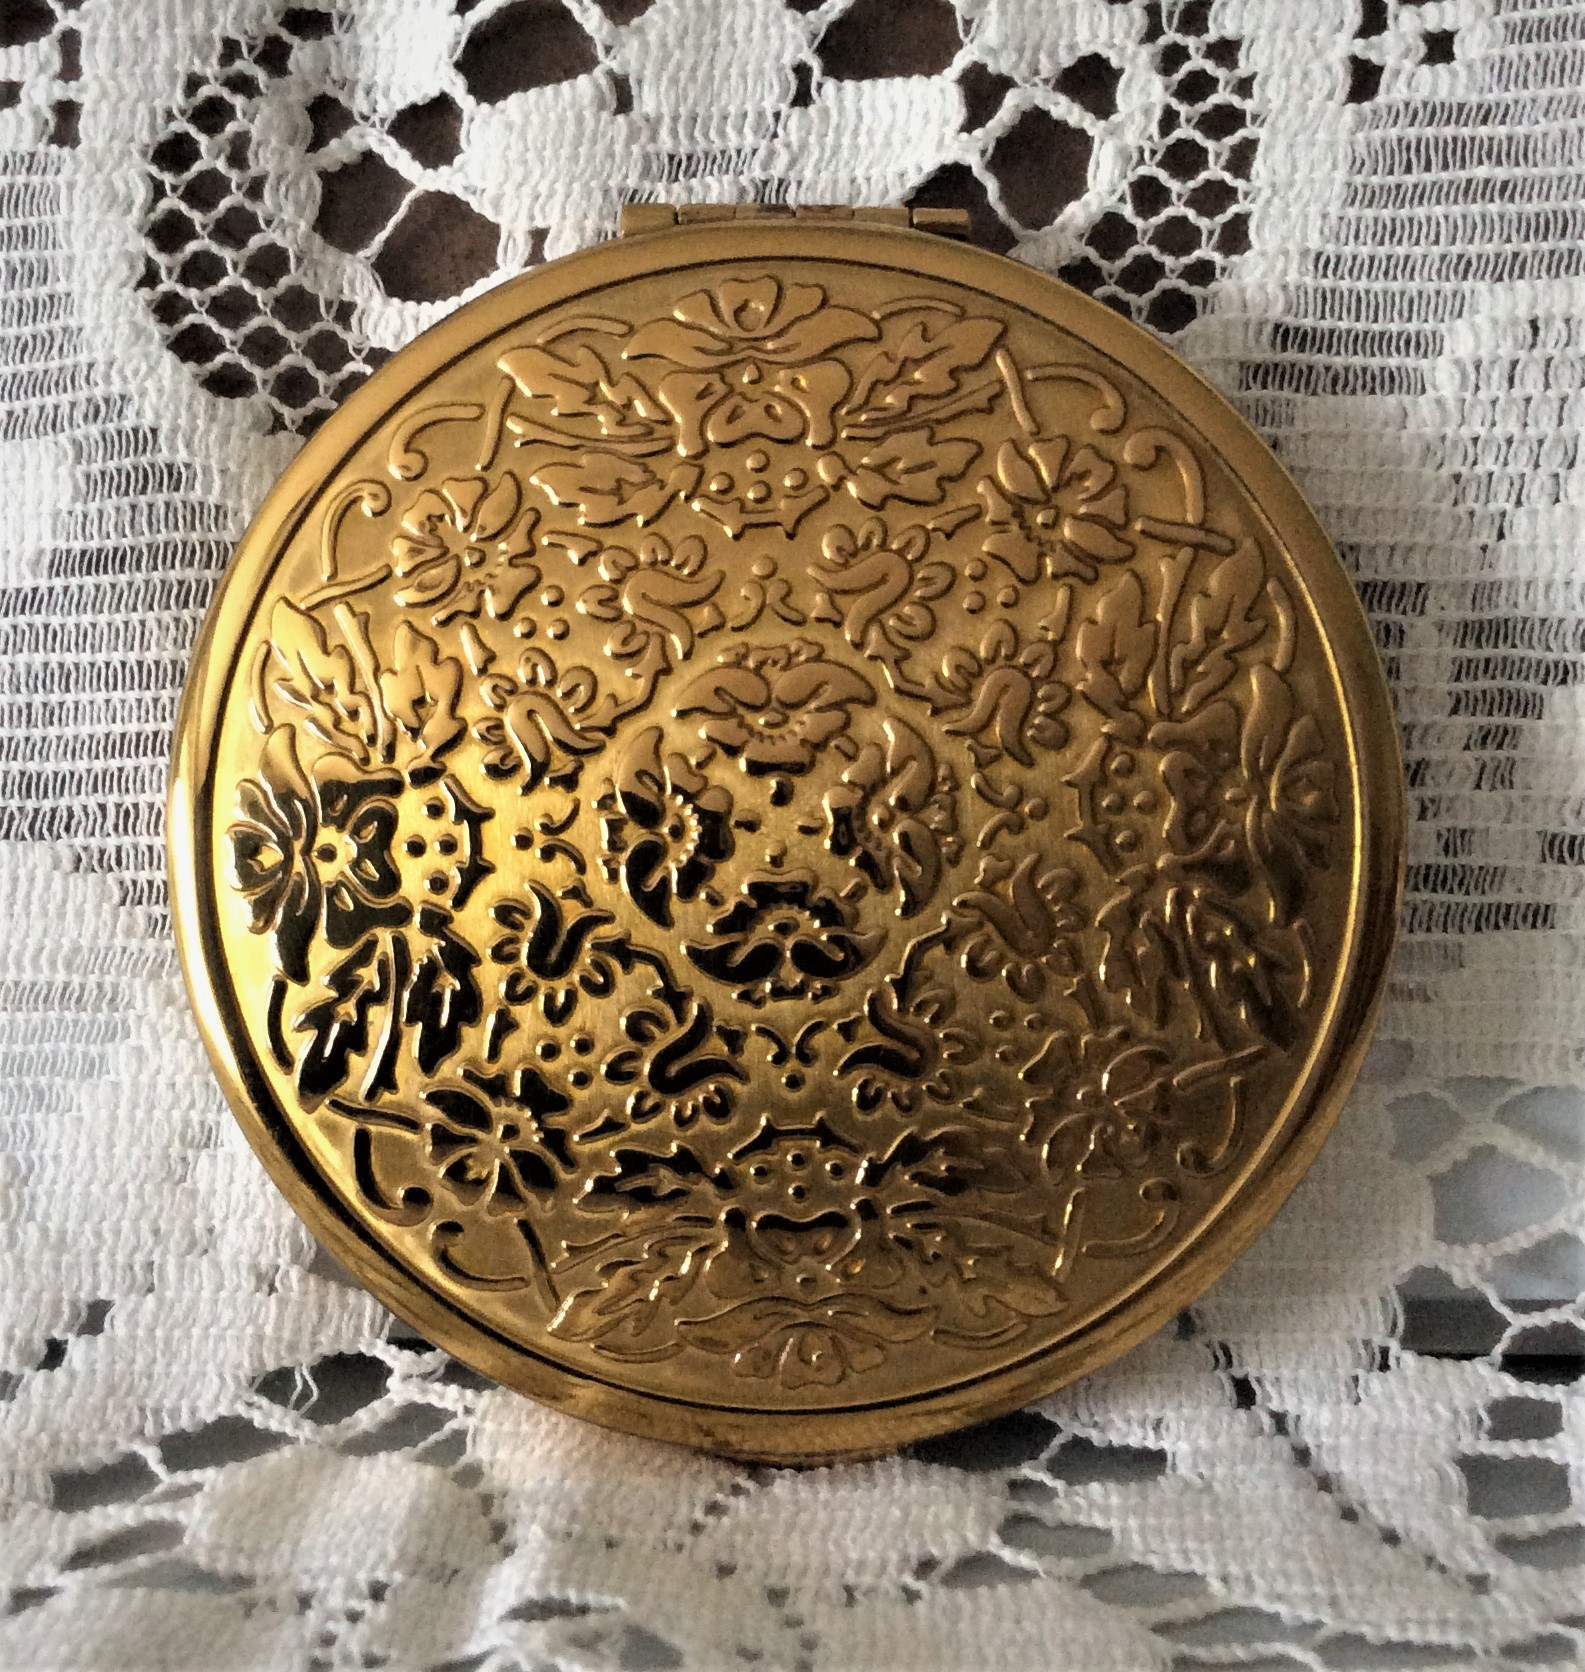 KIGU 50s Quality Embossed and Engine Turned Gold Tone Powder Compact